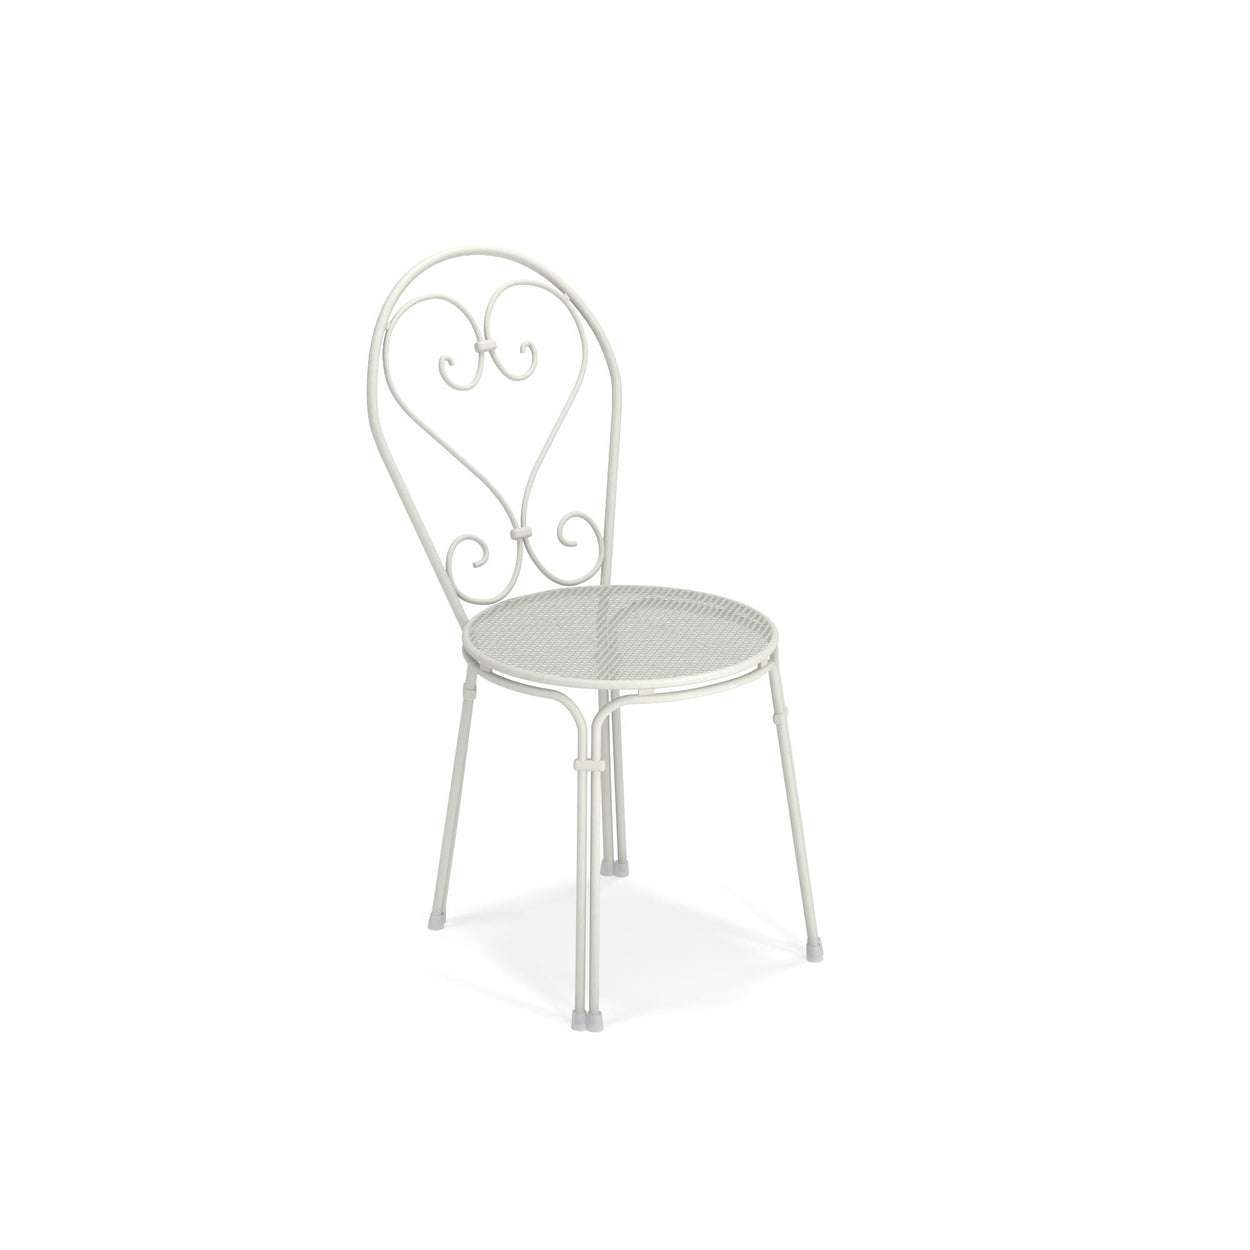 EMU Pigalle Outdoor Chair (Set of 4)